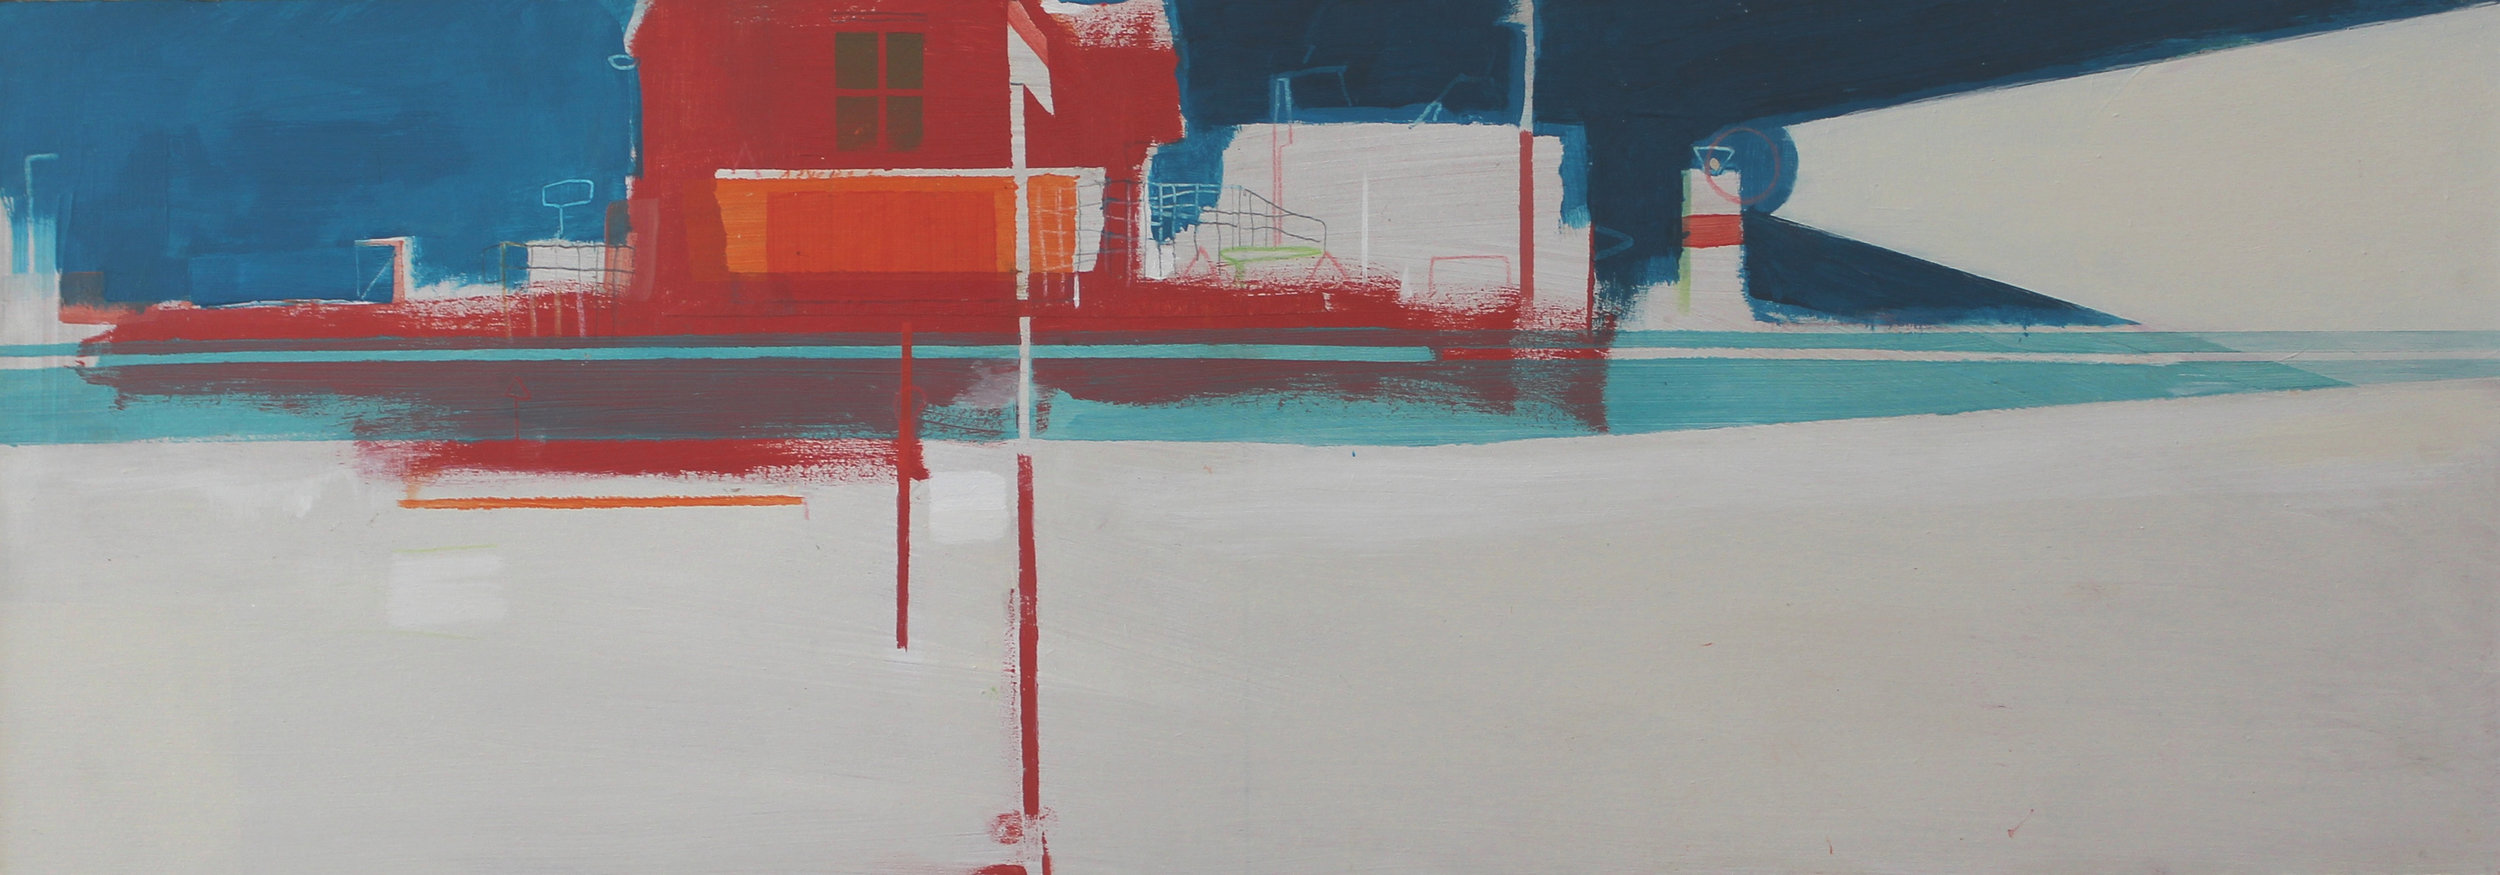 Harbour buildings and lighthouse, acrylic on board, 21.5x61 cm, £900.